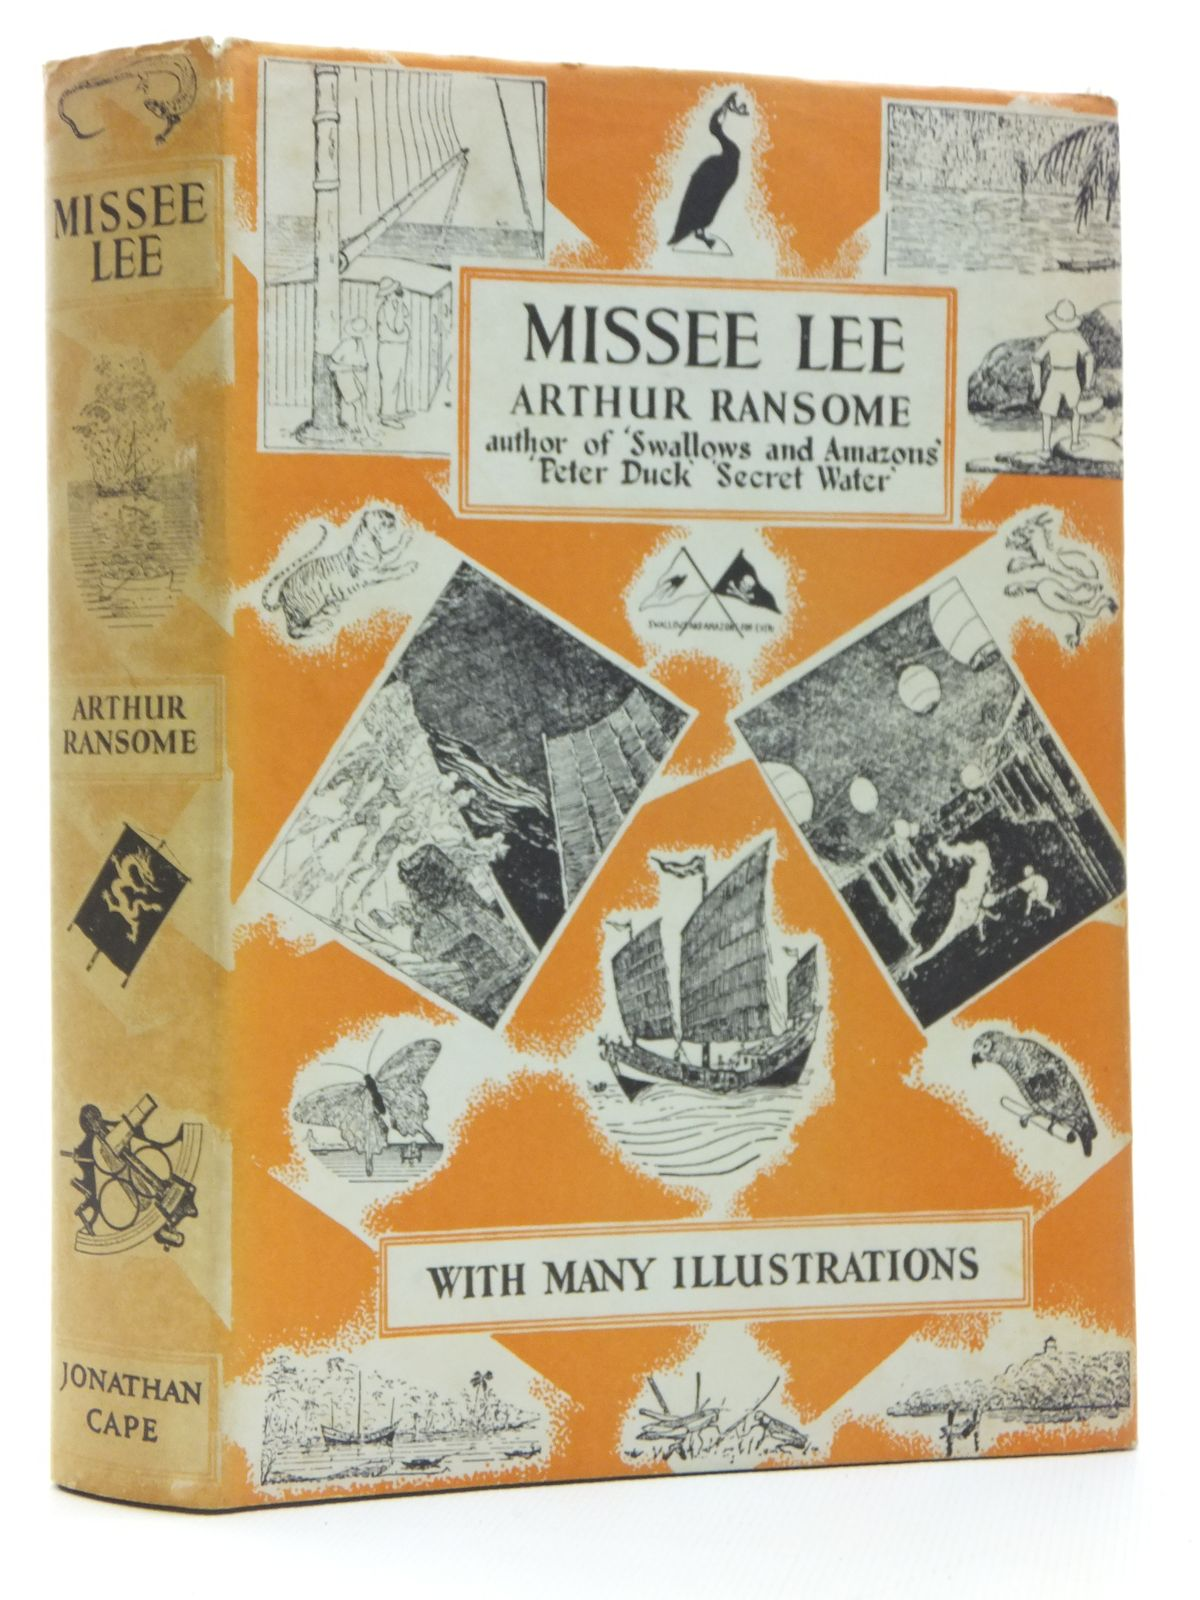 Swallows And Amazons By Arthur Ransome Featured Books